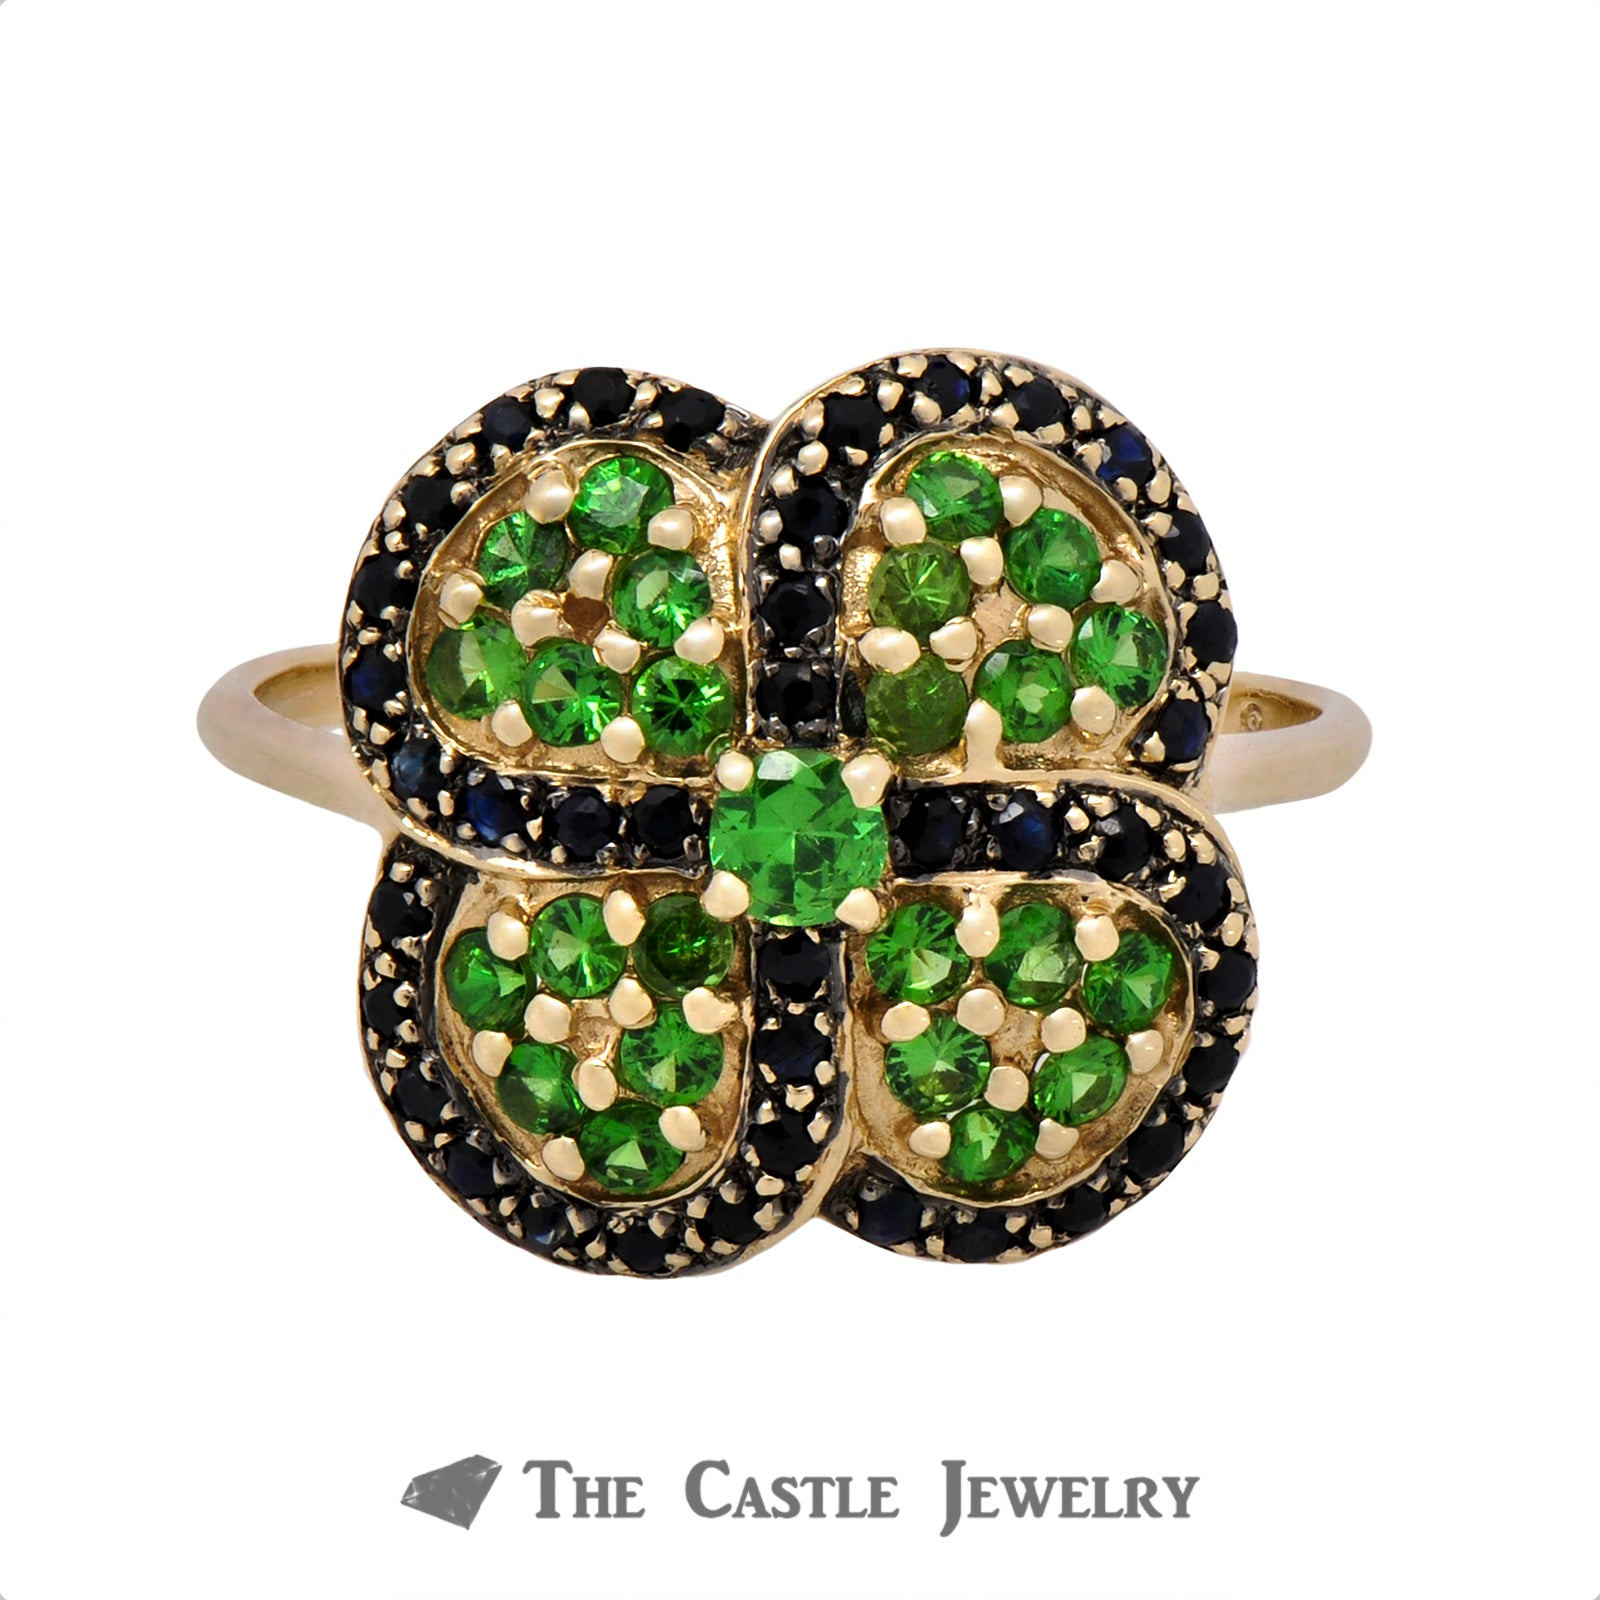 Sapphire and Tsavorite Garnet Clover Cluster Ring in 10k Yellow Gold